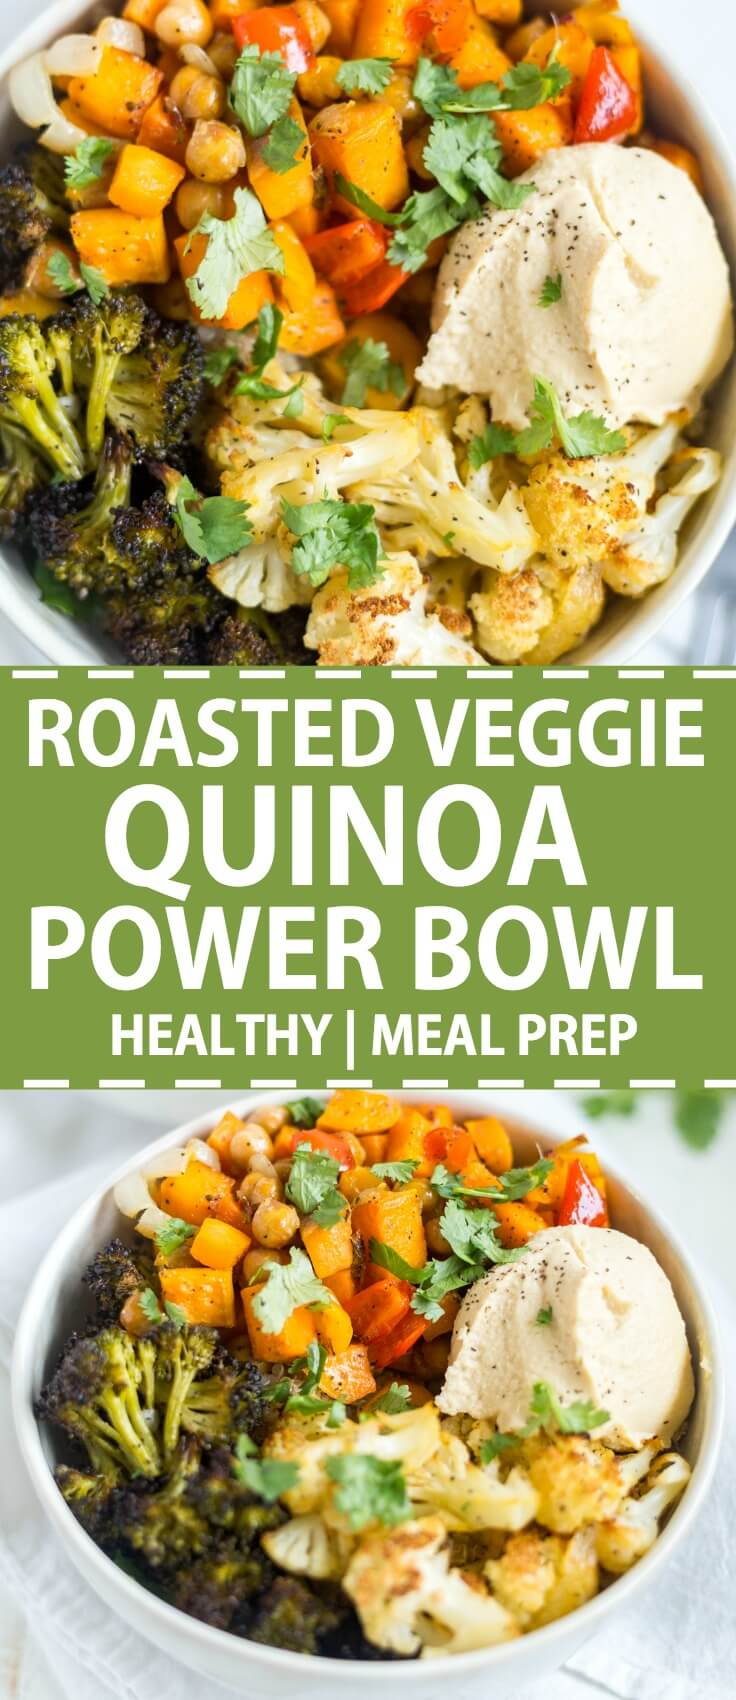 quinoa power bowl